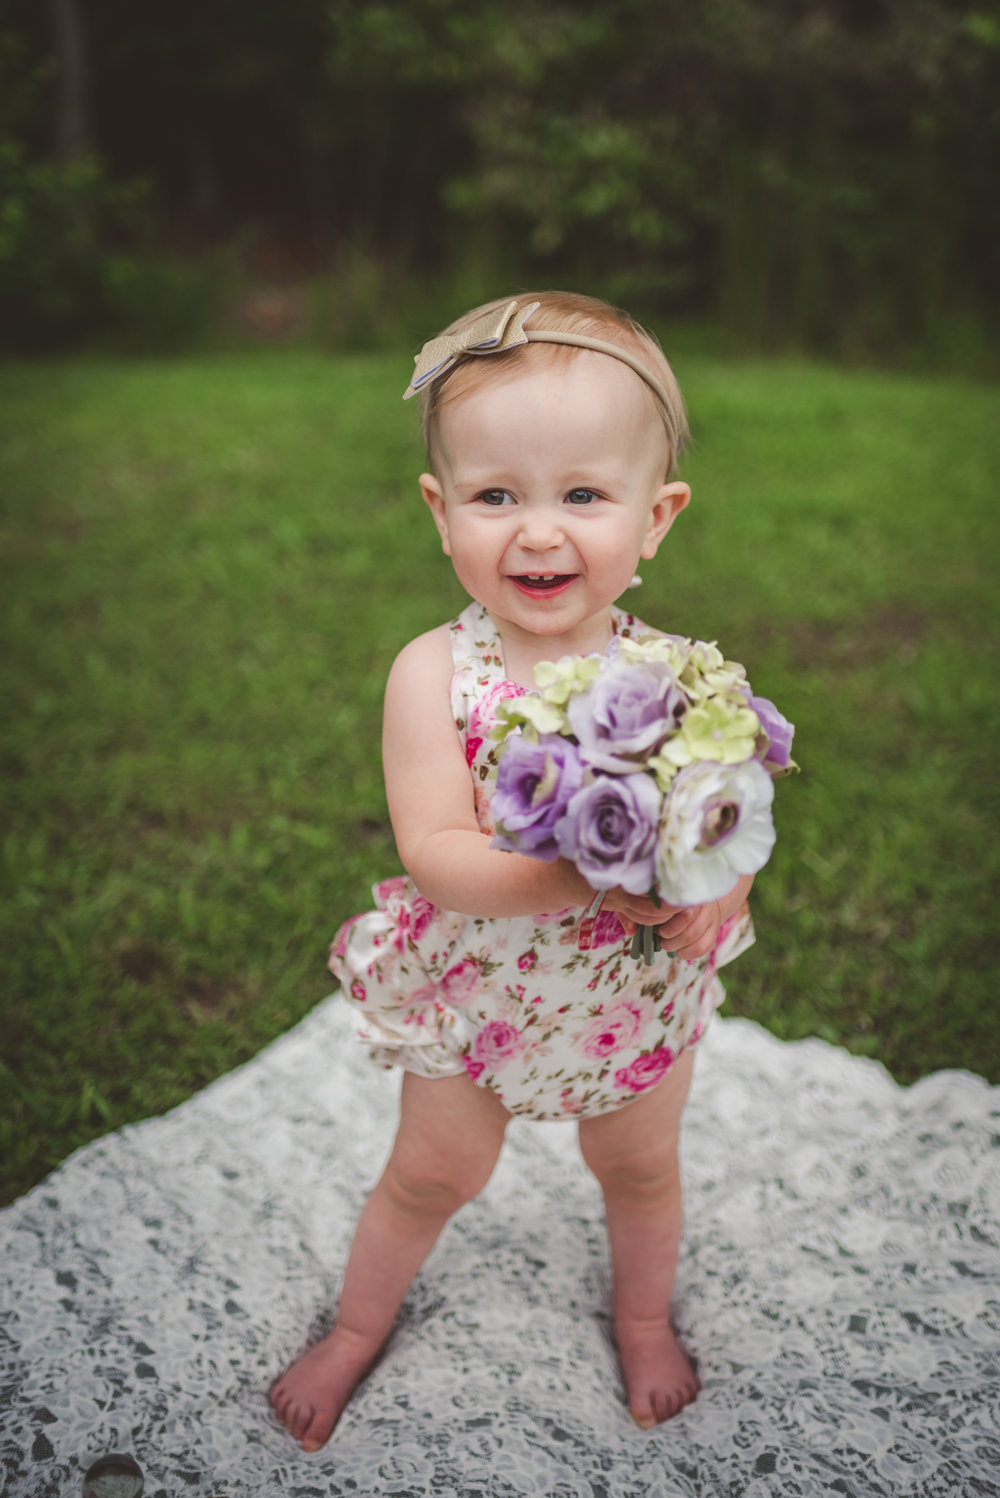 This little girl holds a bouquet of flowers for her first birthday in Rolesville, North Carolina, image taken by Rose Trail Images.